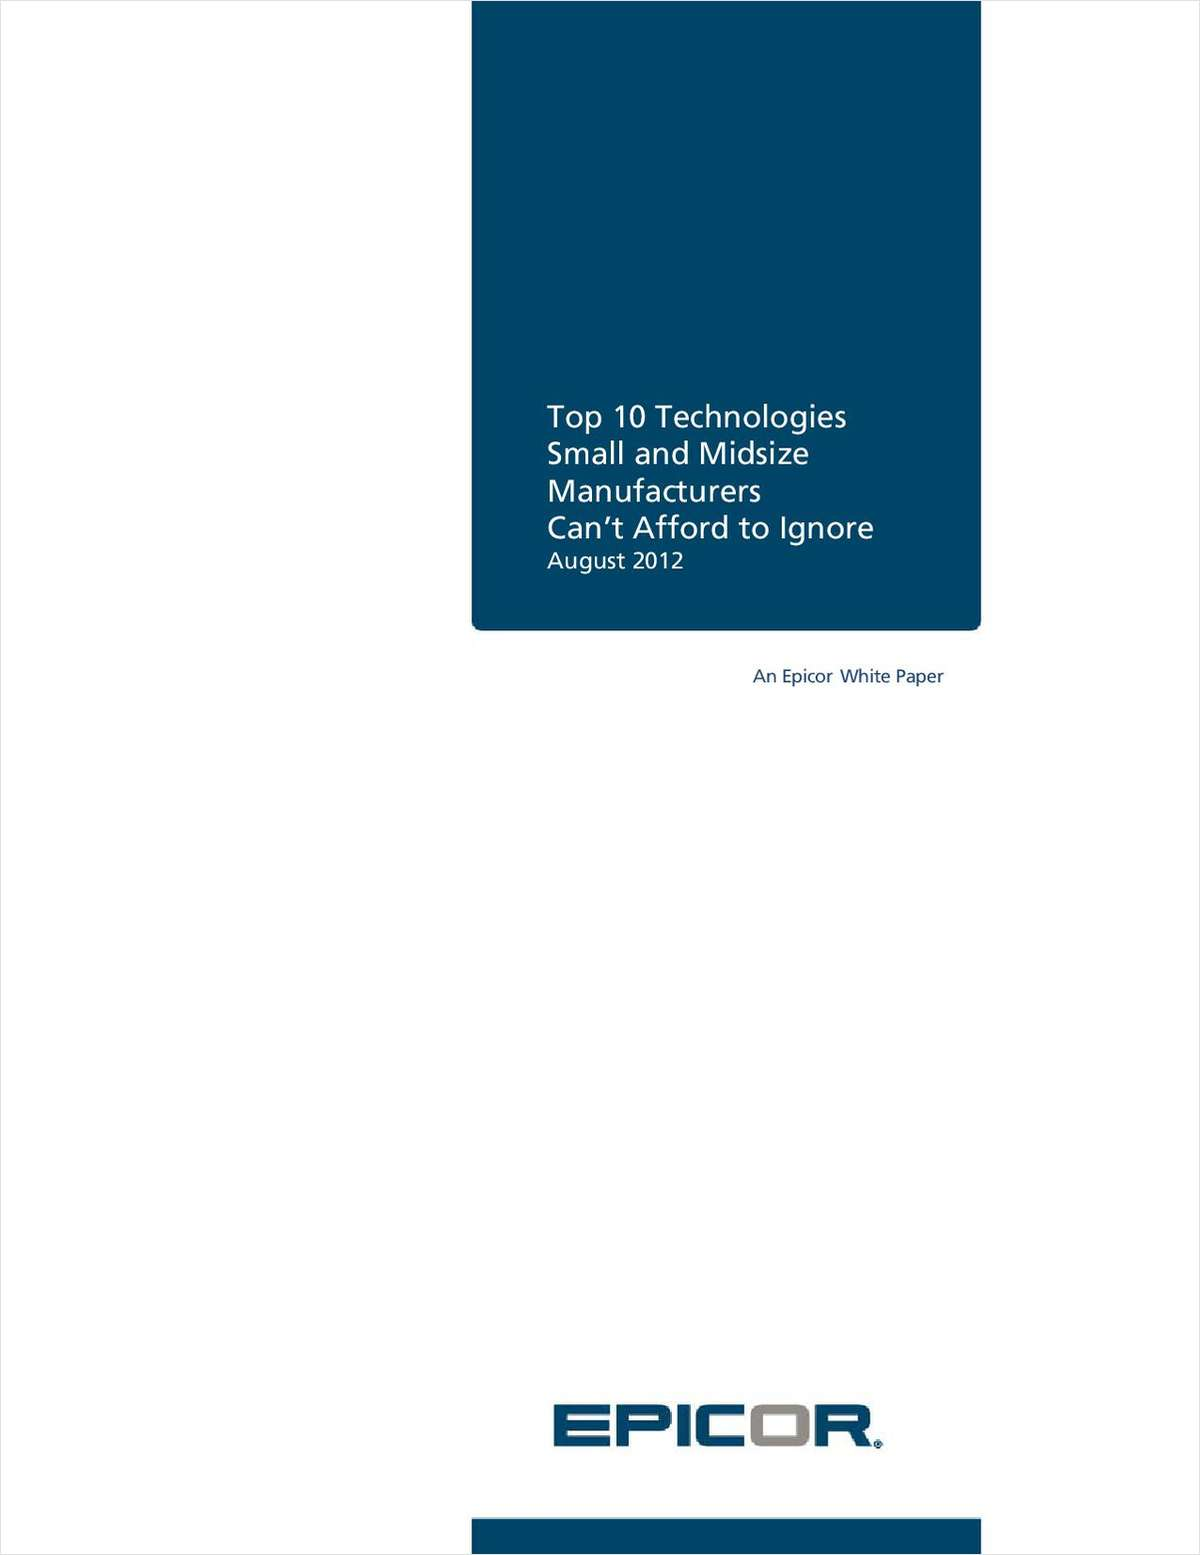 Top 10 Technologies Small and Midsize Manufacturers Can't Afford to Ignore